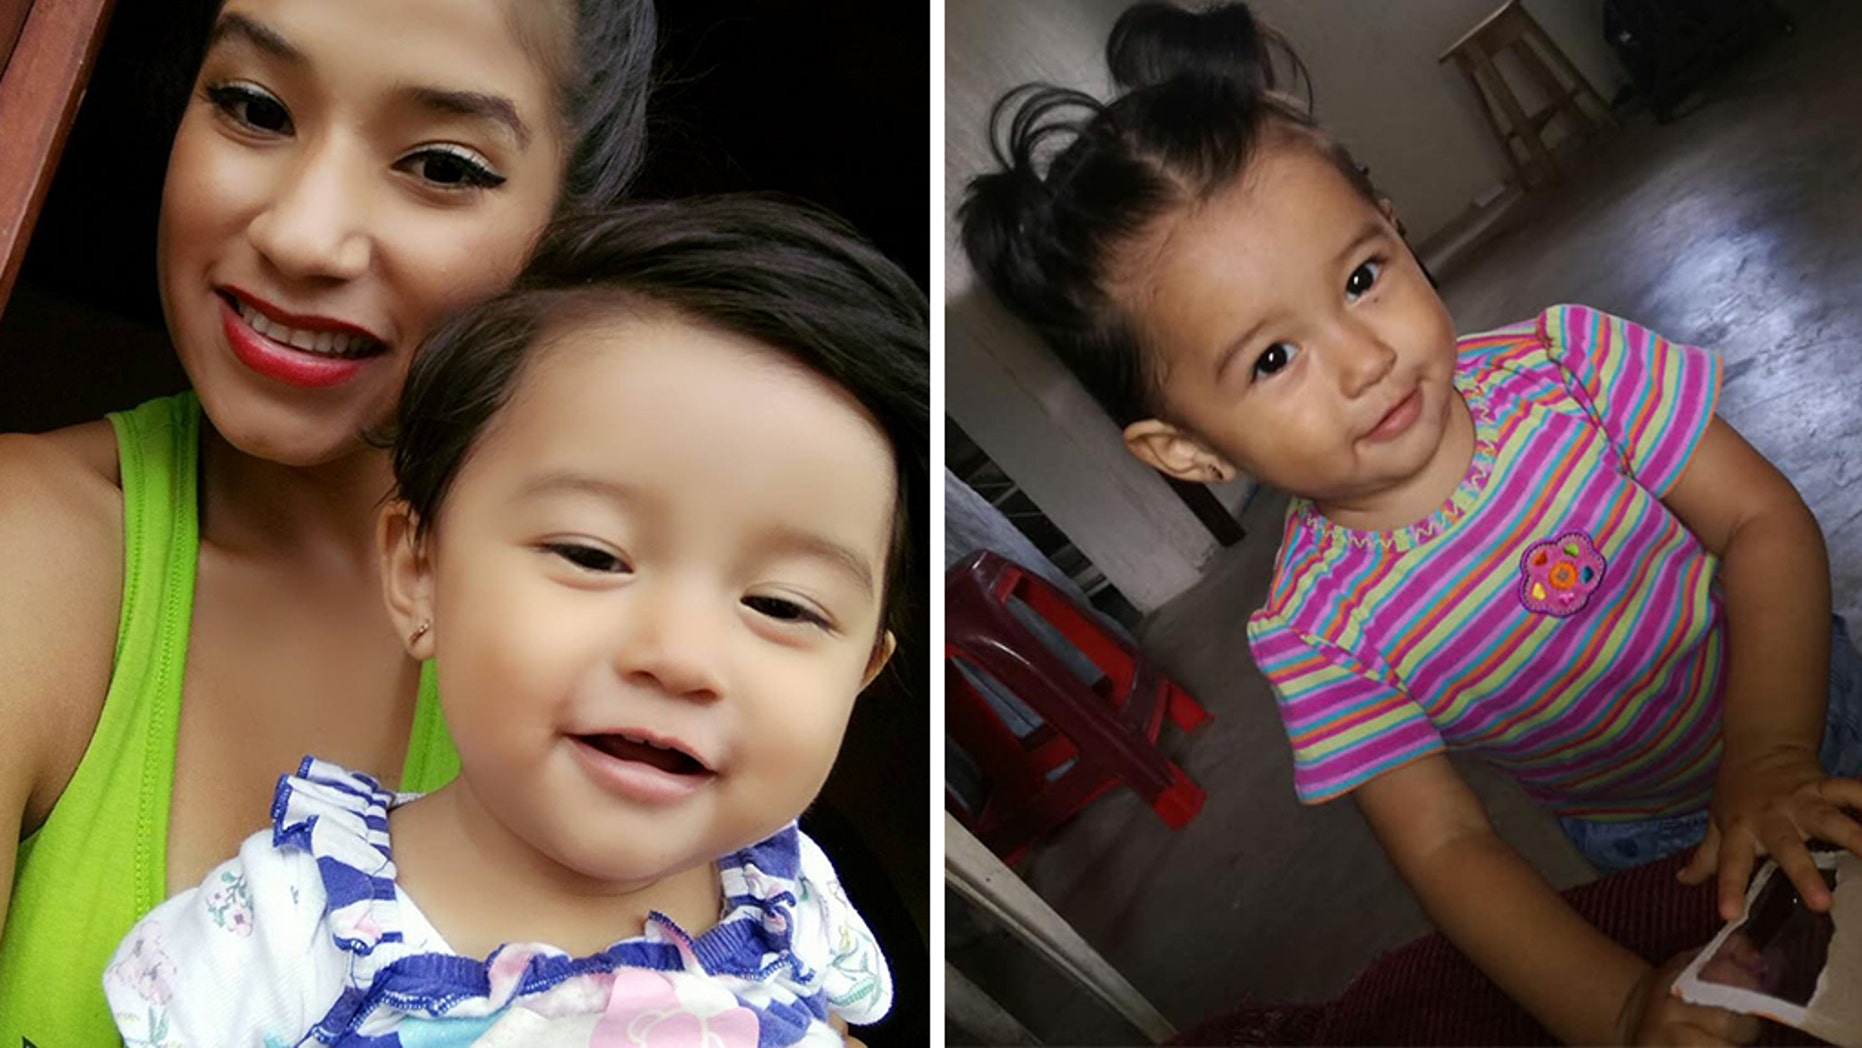 Yazmin Juarez and her daughter Mariee, the toddler, who died weeks after their release from a facility in Texas.